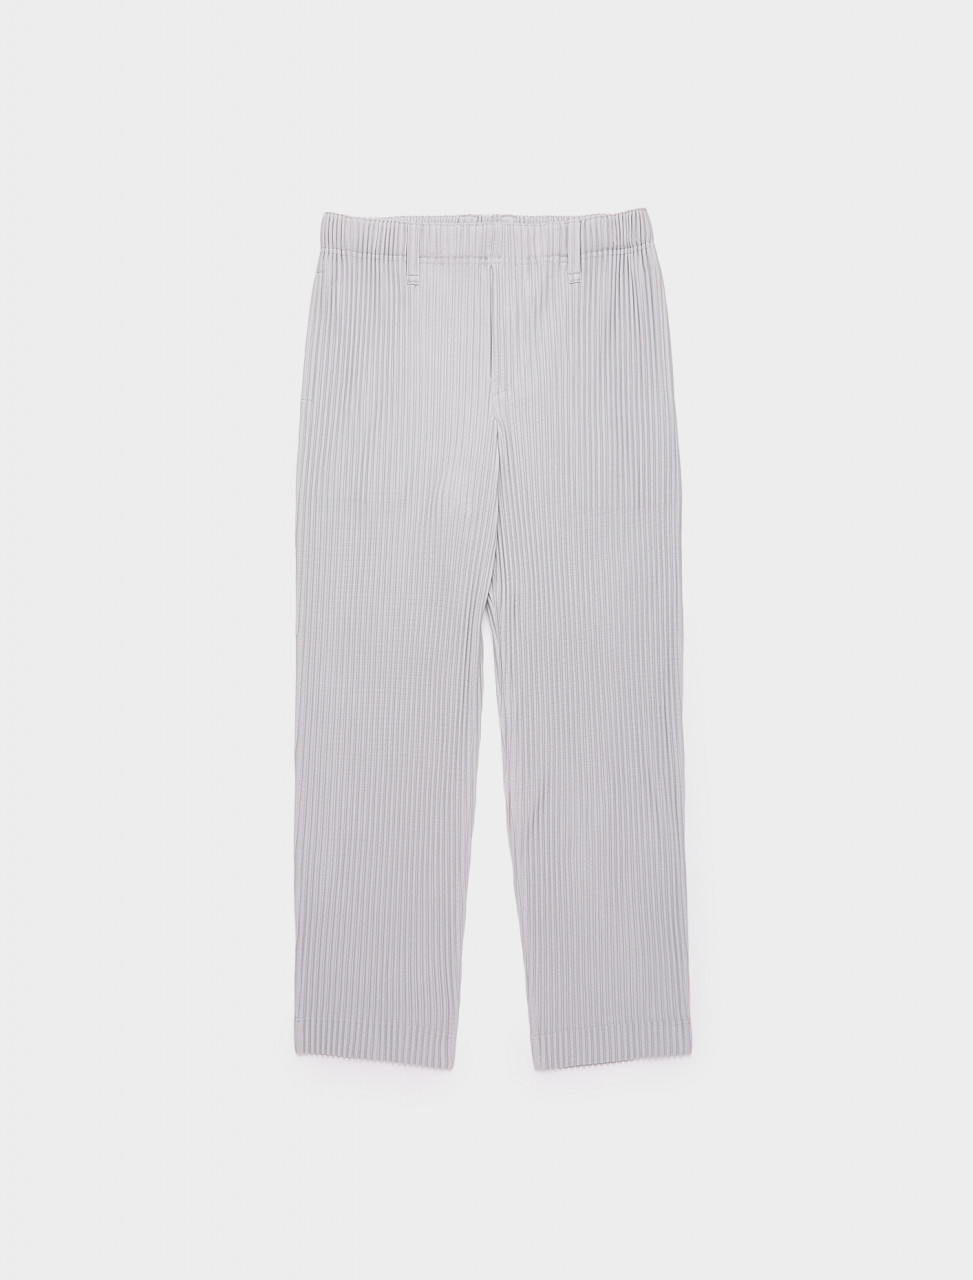 255-HP08JF150-11 ISSEY MIYAKE PANTS HP08 JF150 BASICS LIGHT GREY